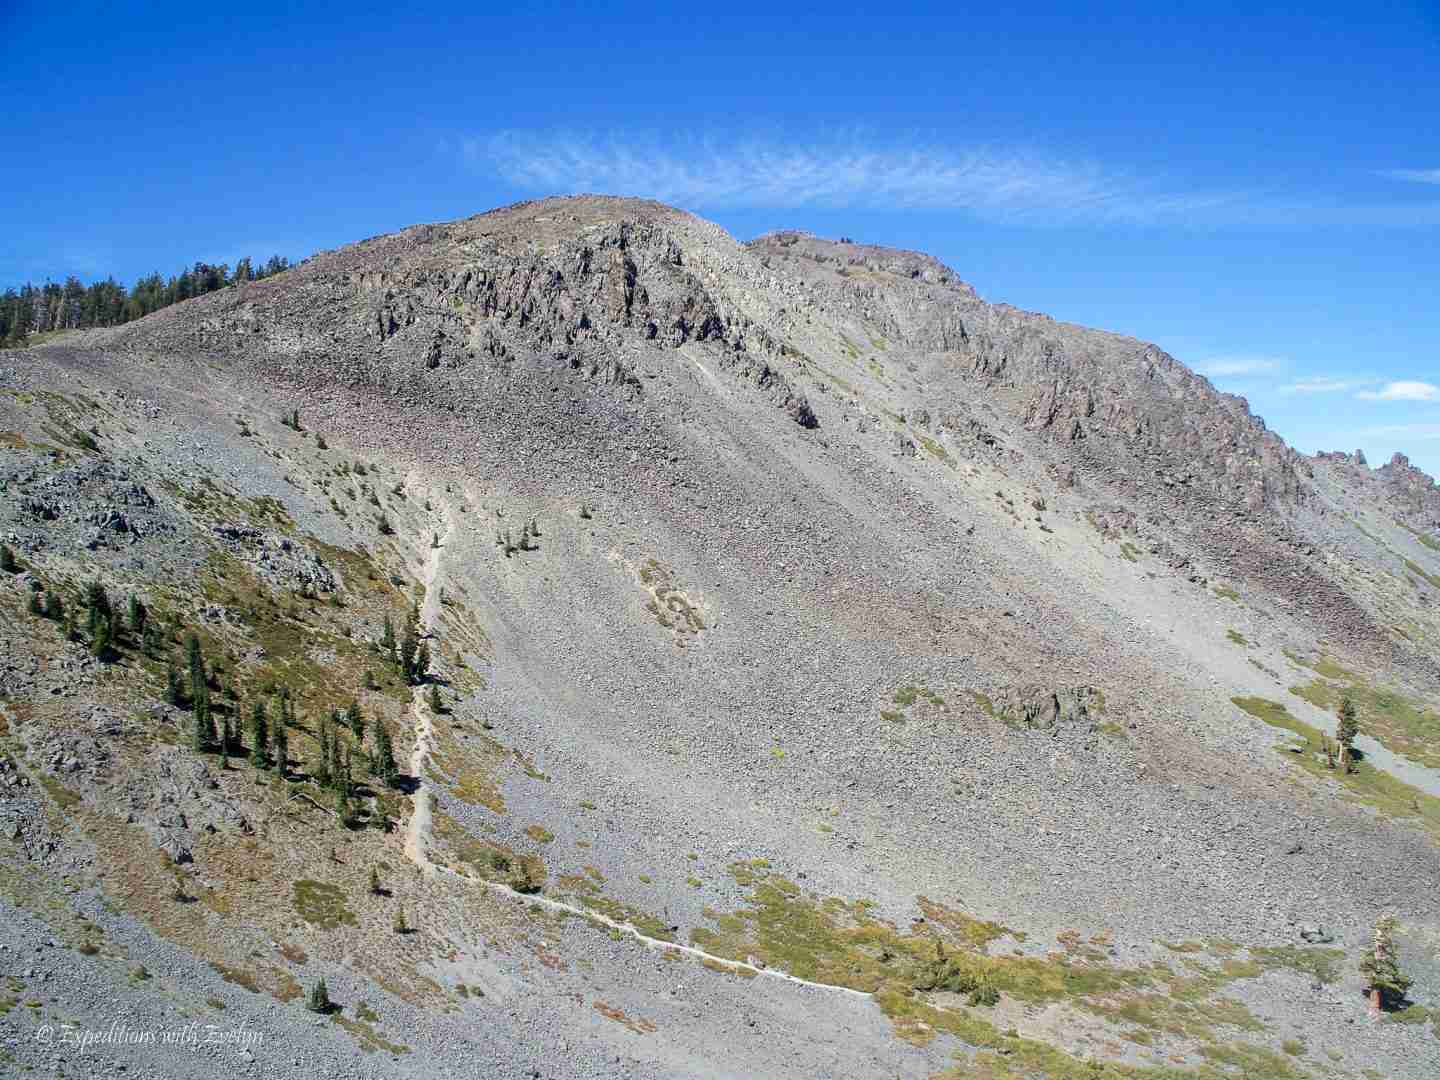 A trail zig zags up a barren side of a gray mountain.